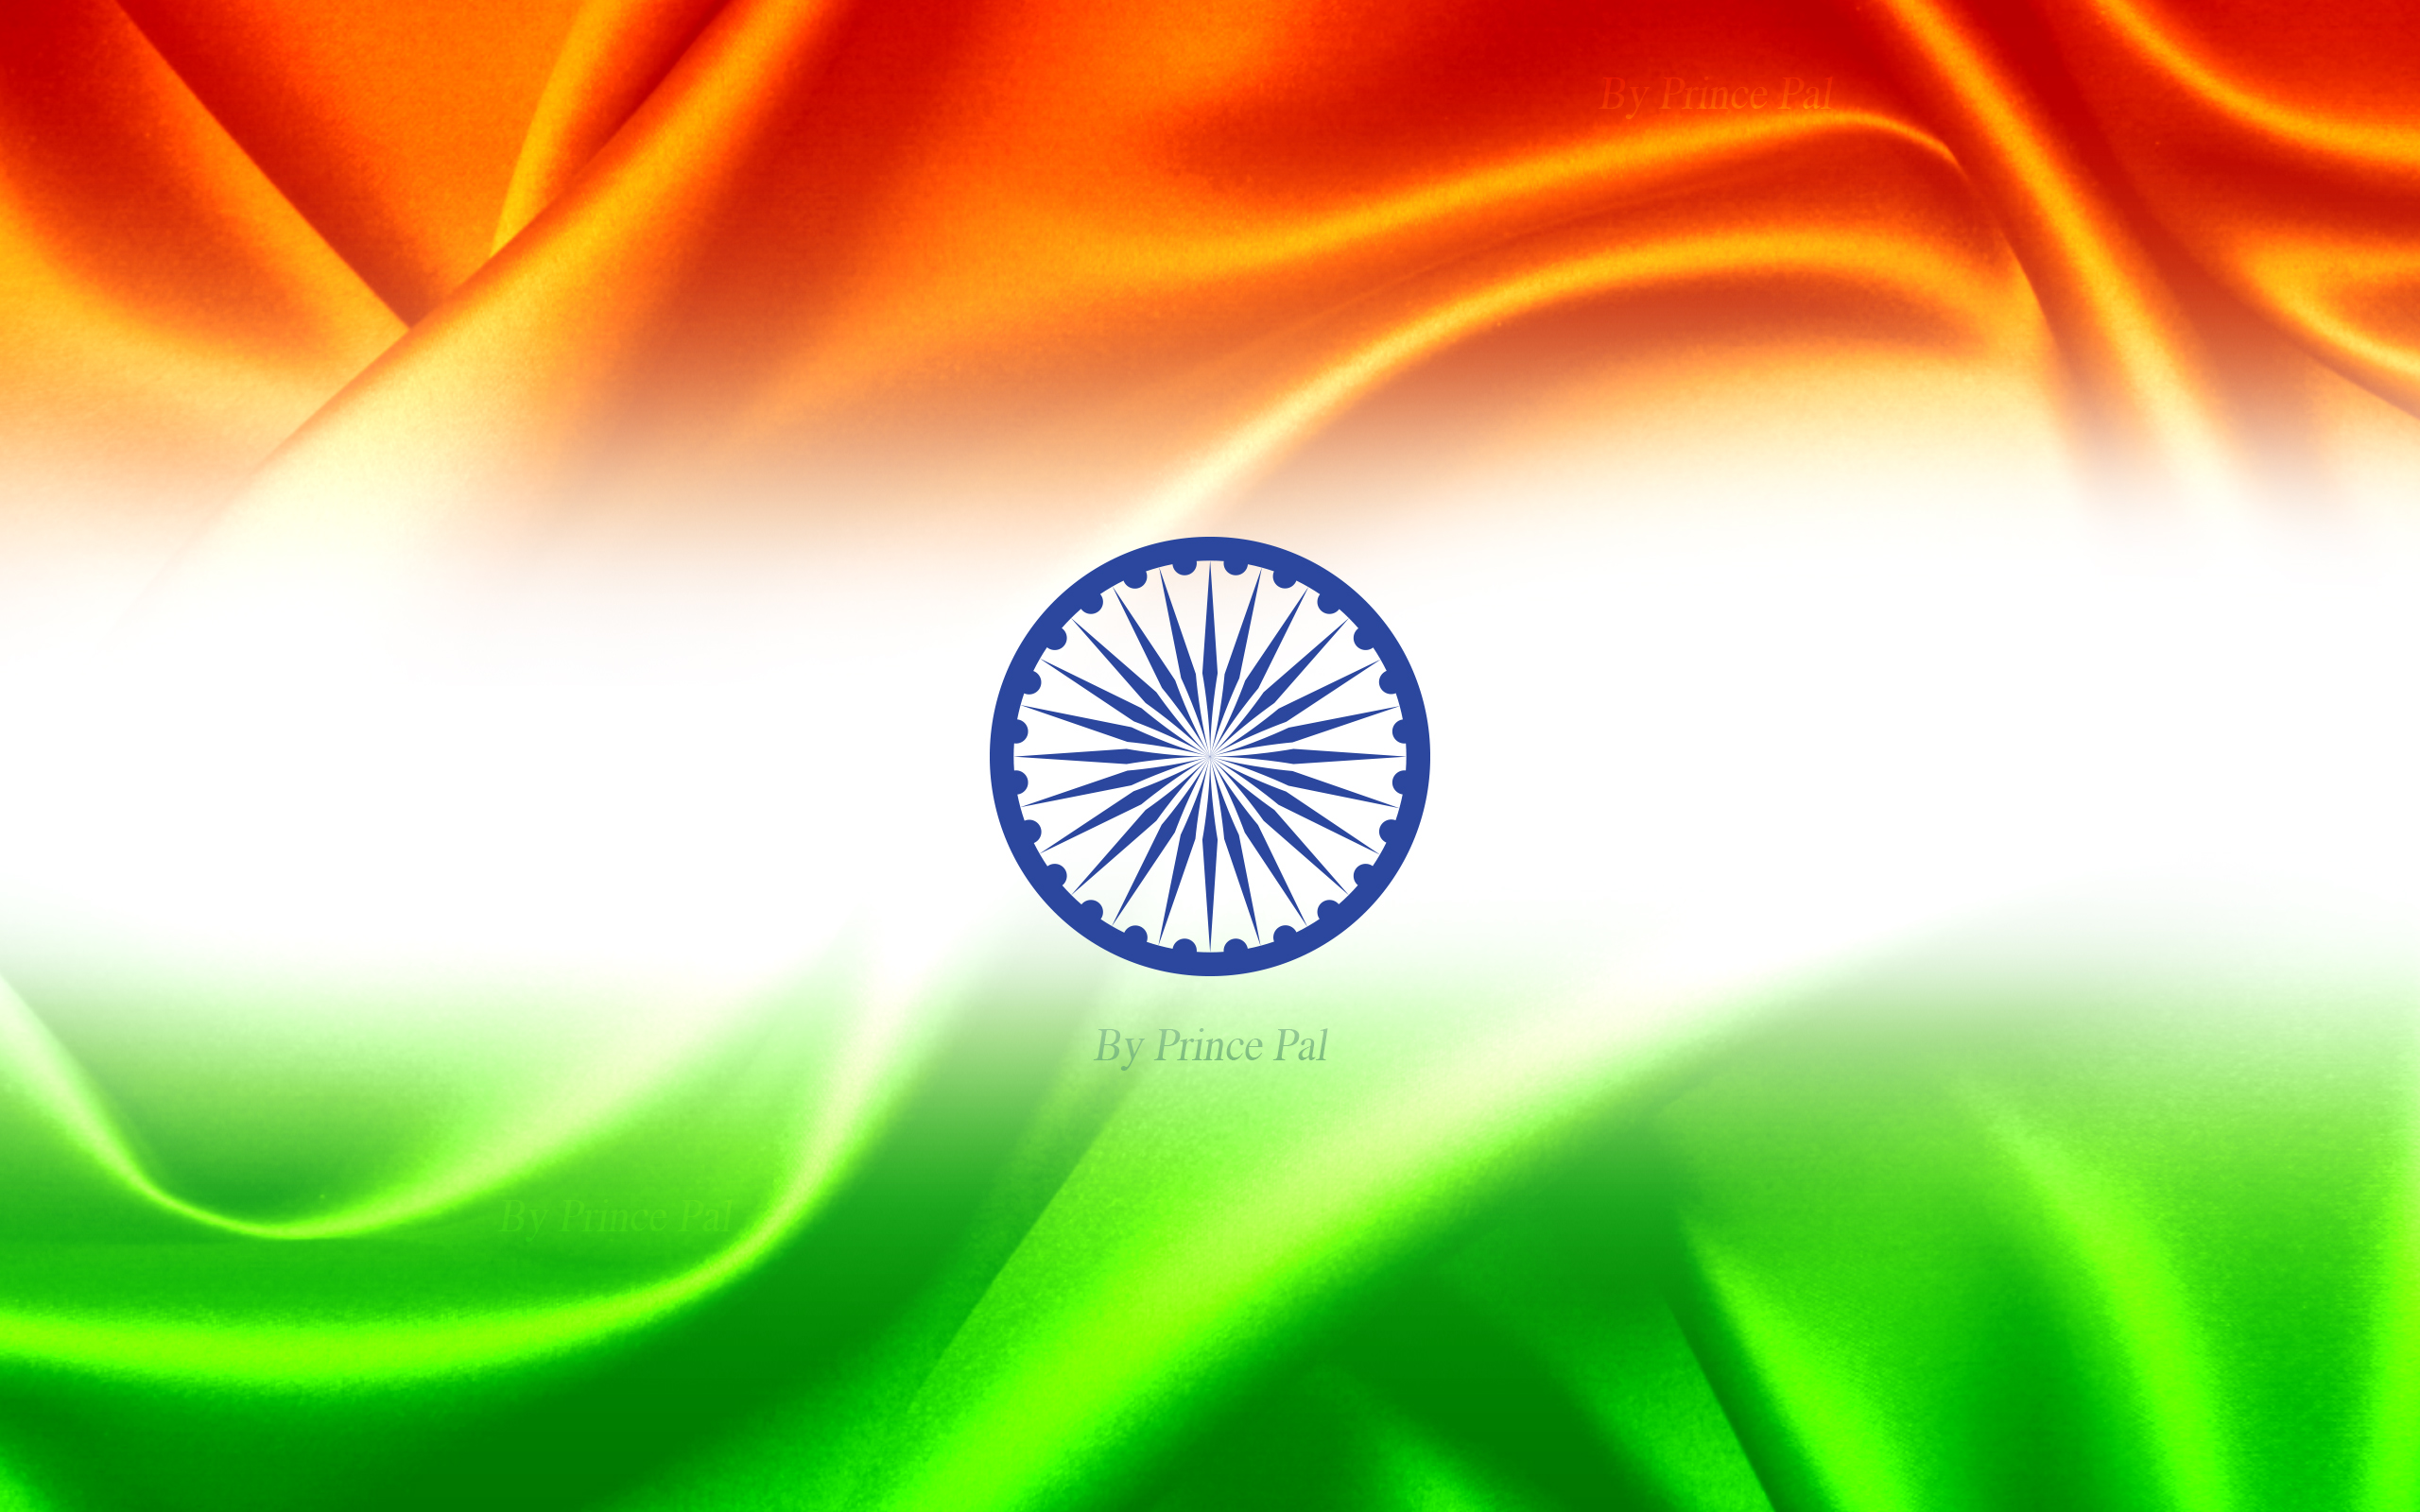 beautiful indian flag (tiranga) wallpapers - happy independence day!